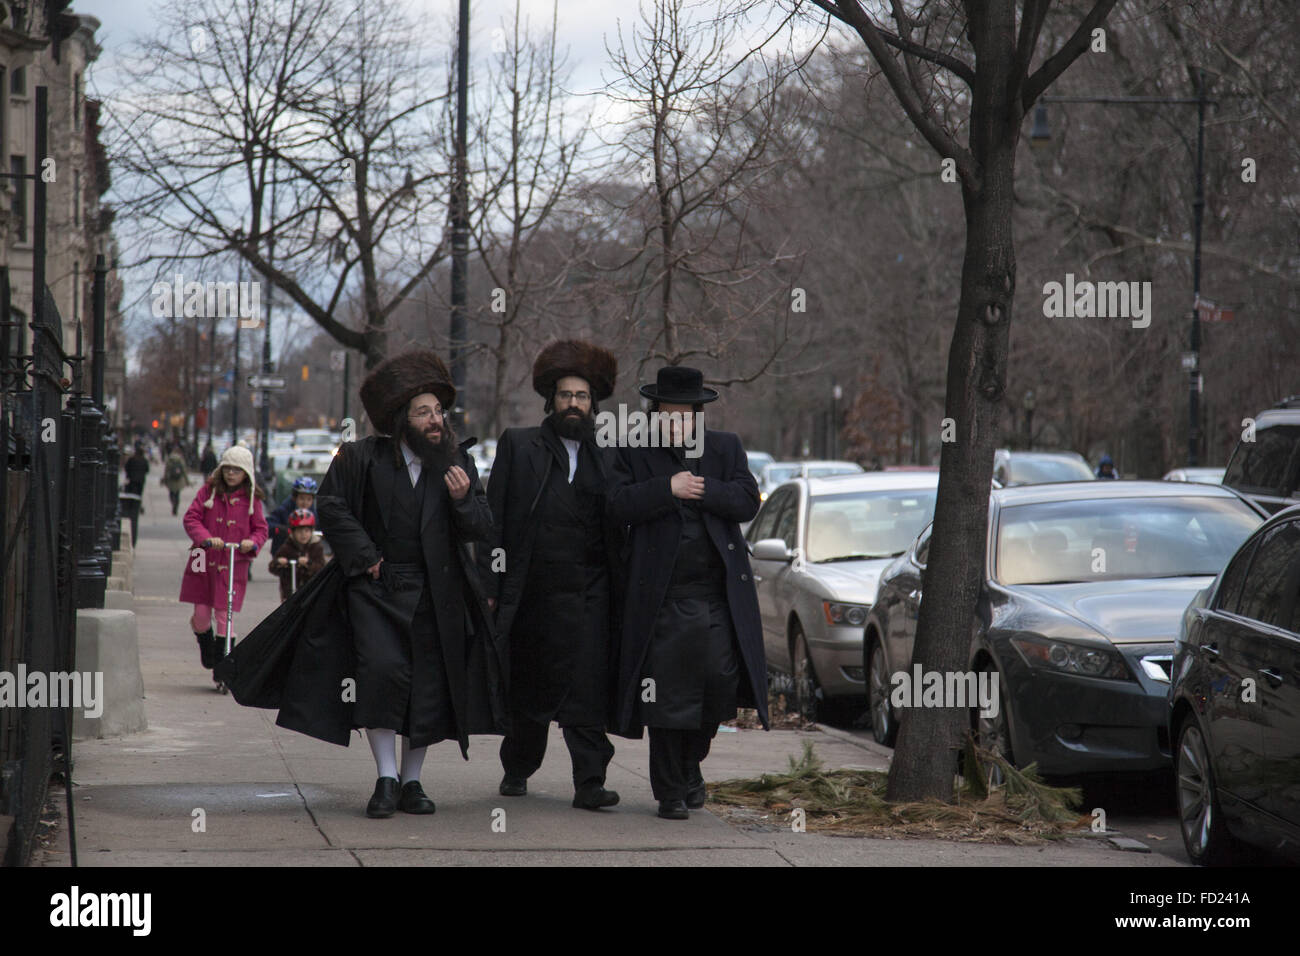 jewish single men in park We've had this success because we have a singular mission of bringing jewish singles together in marriage  exclusively jewish exclusively for marriage get started.